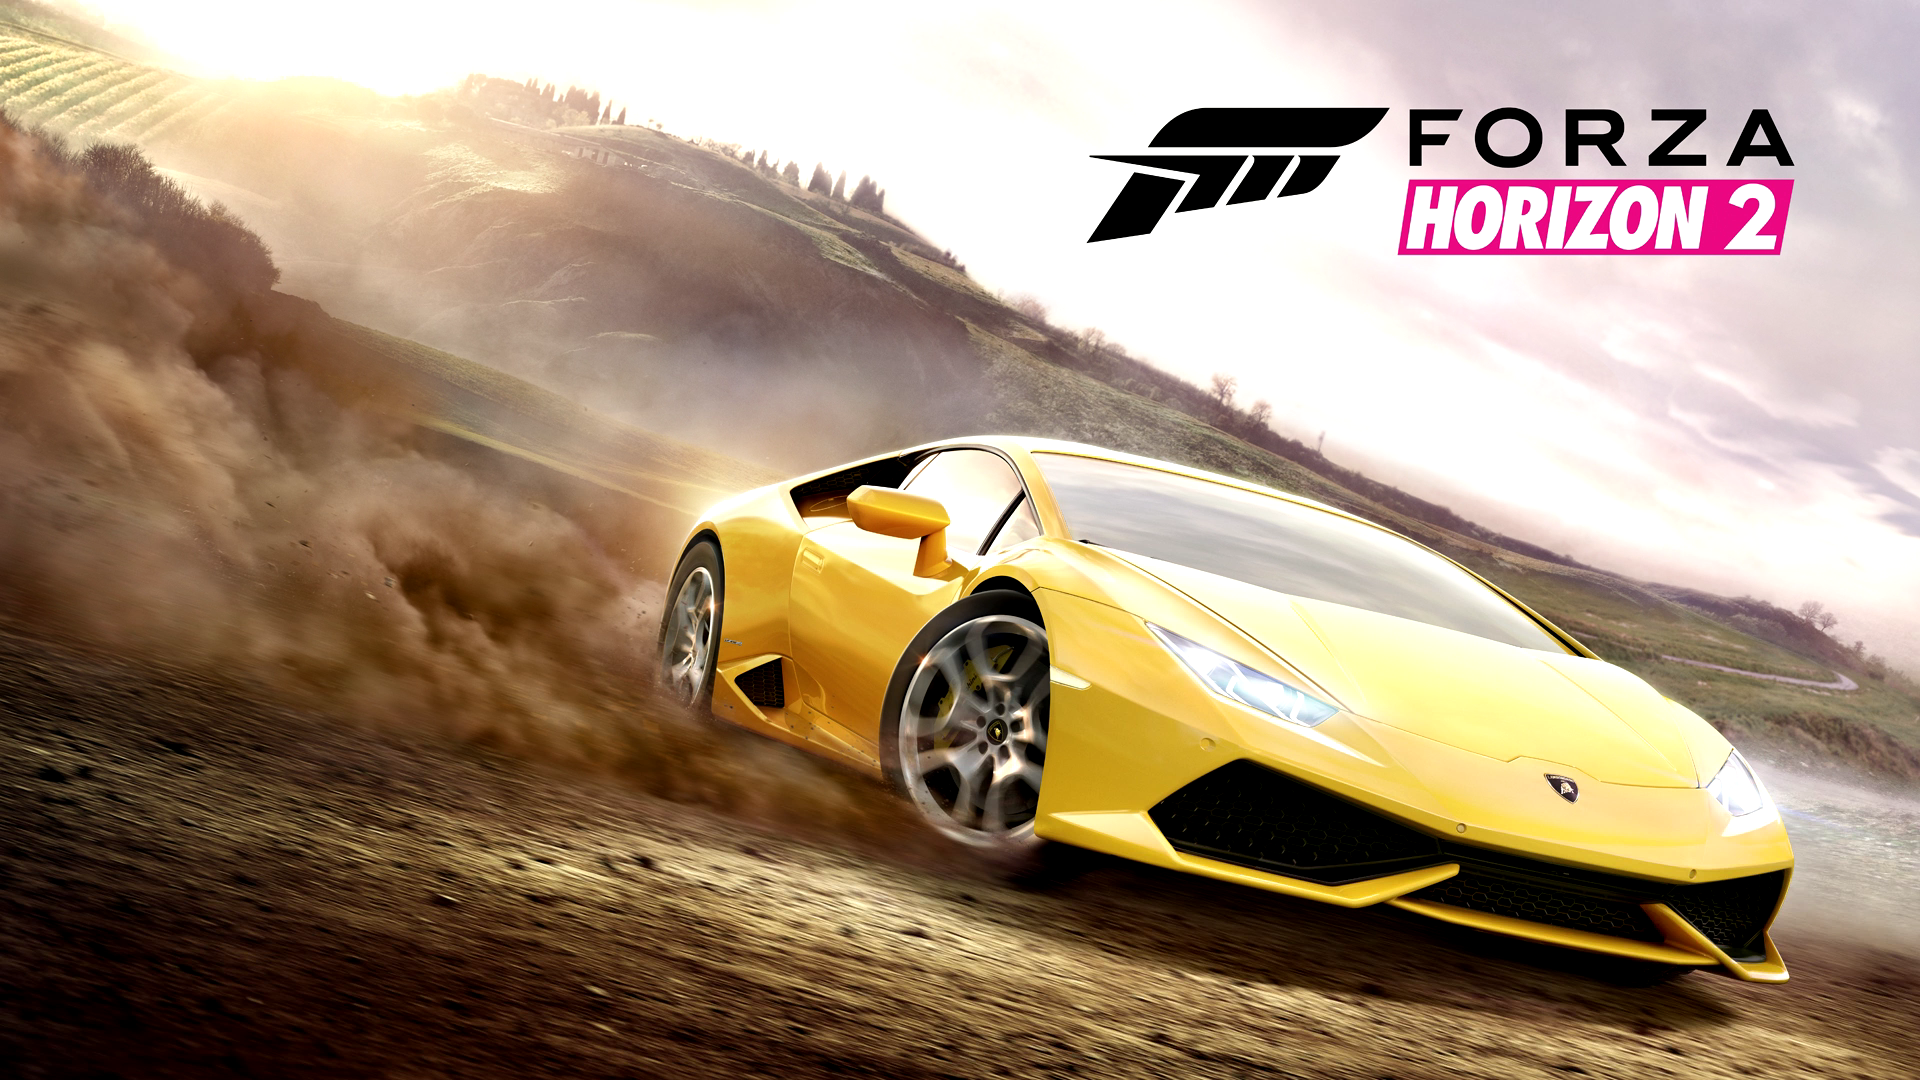 Forza Horizon 2 Xbox One Title screen